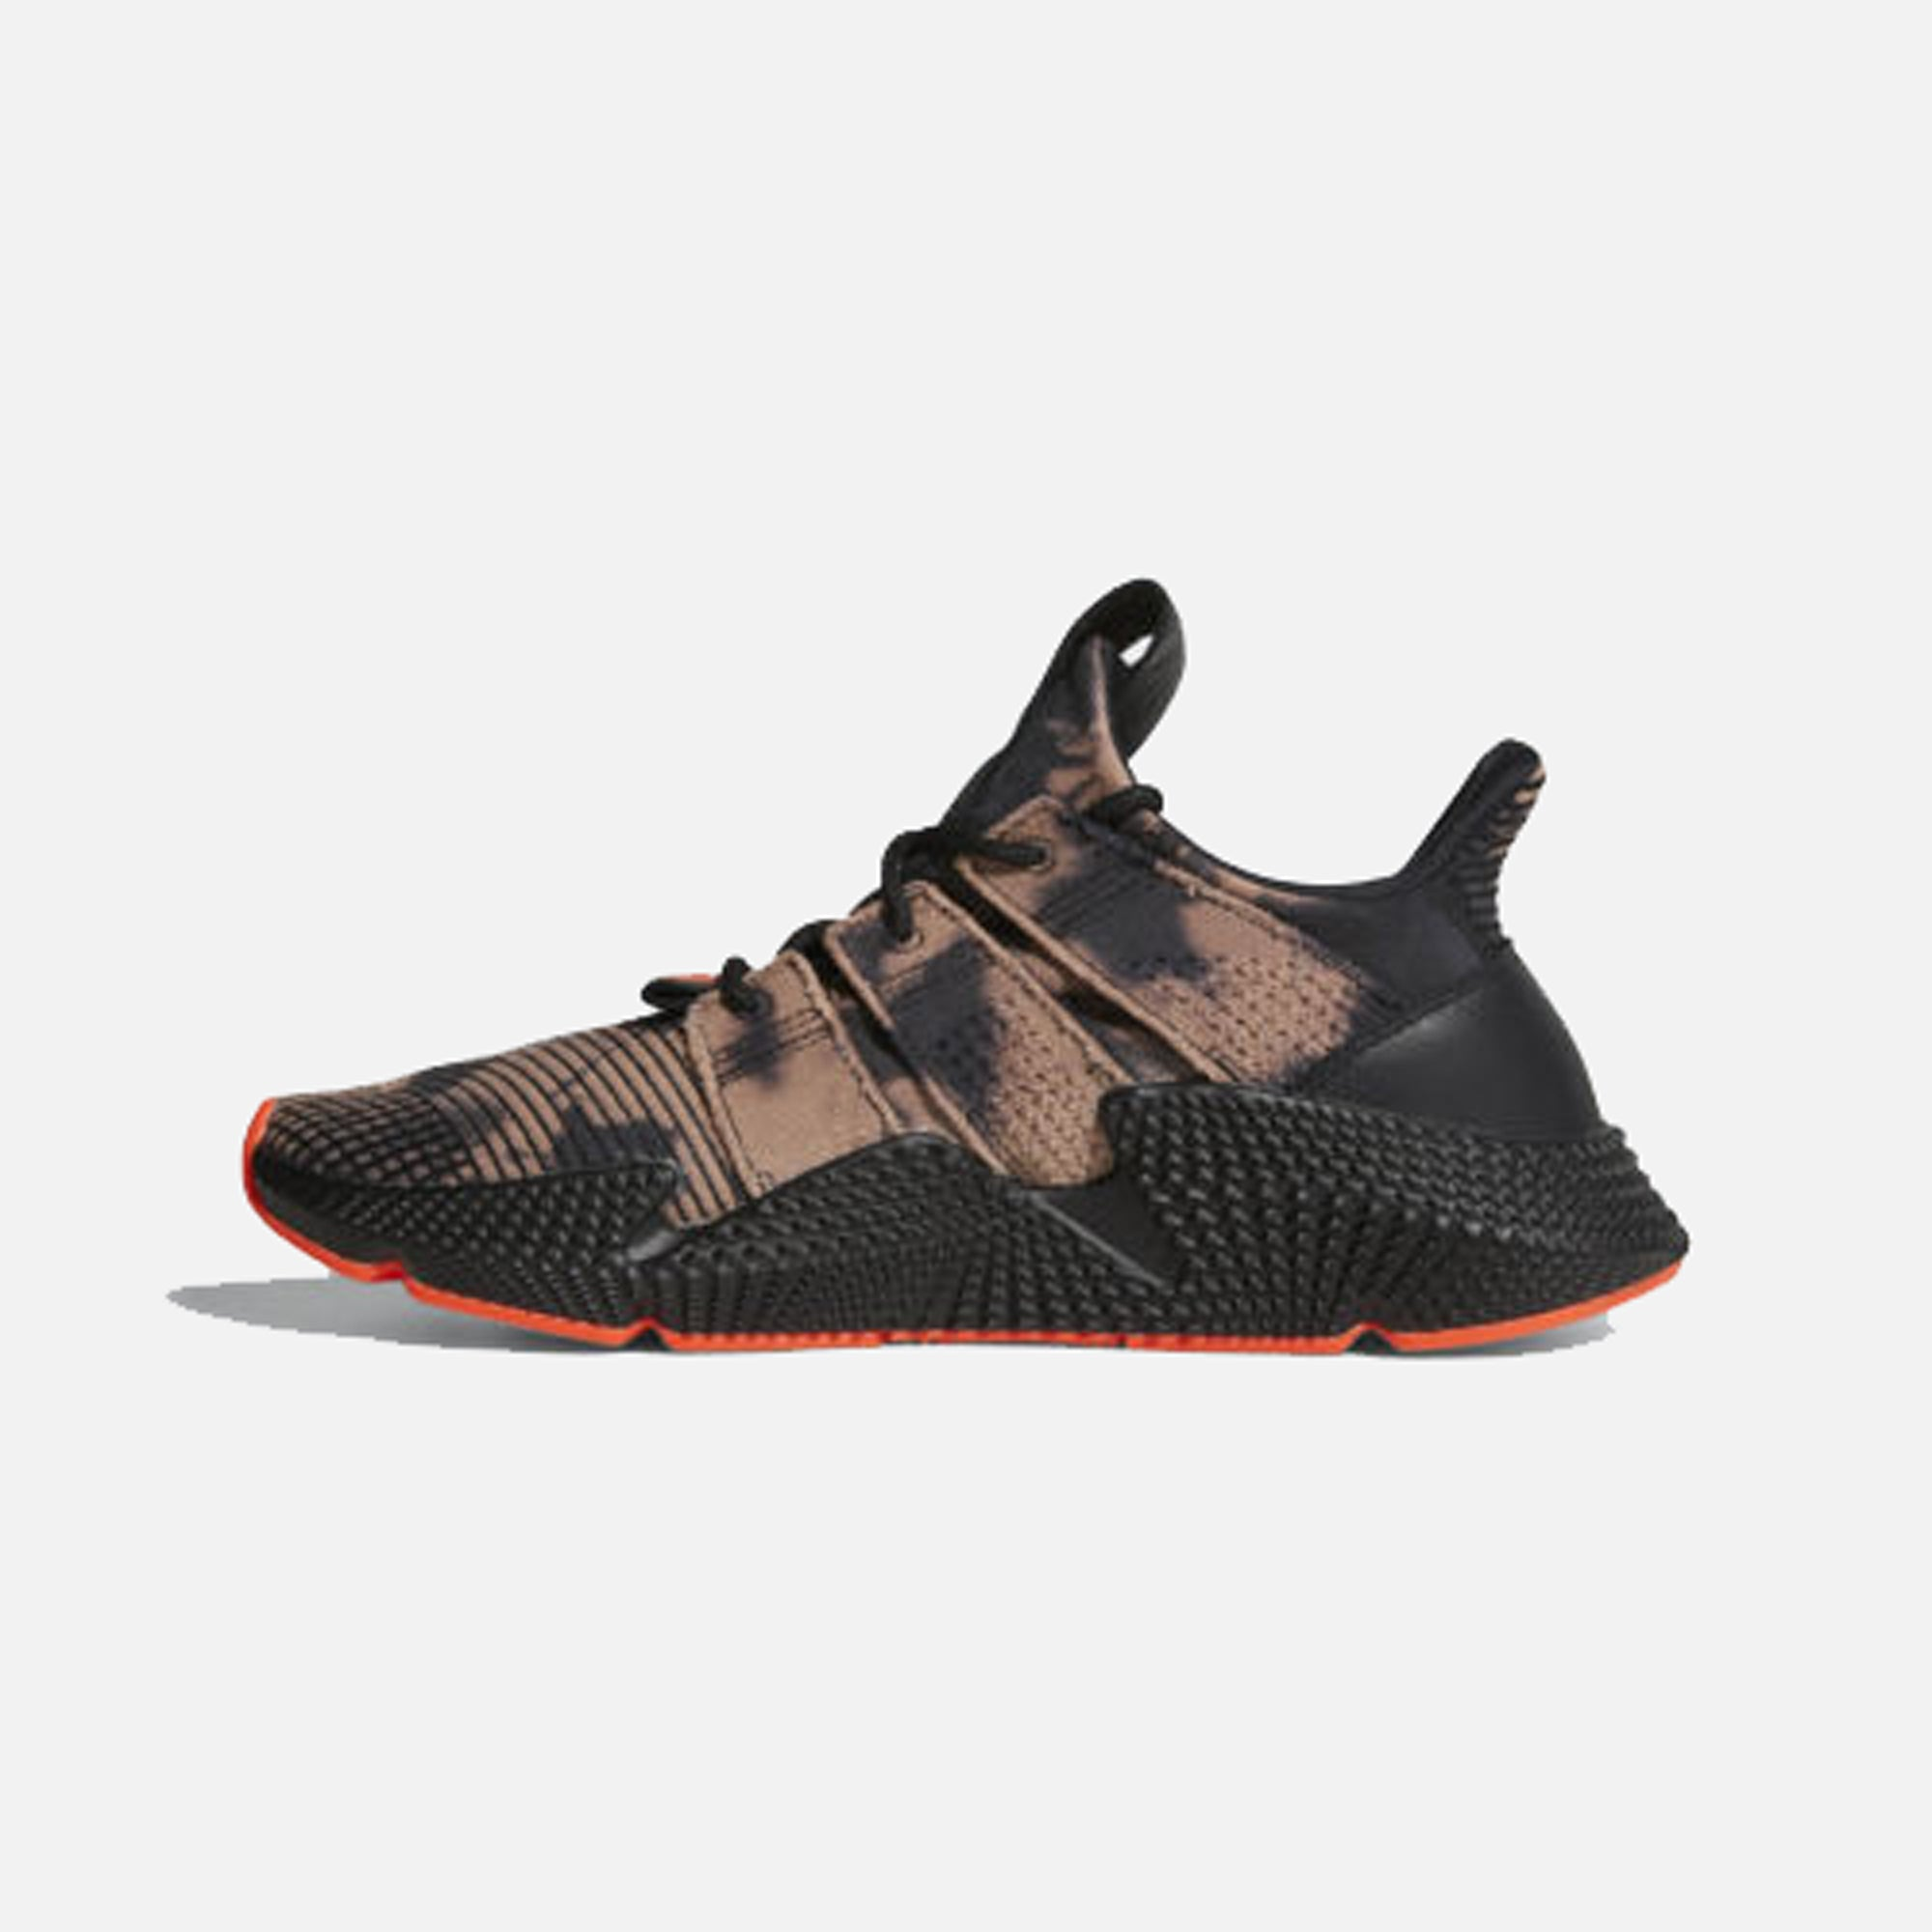 9f66104df55d adidas x dragon ball prophere shoes – PZOZO